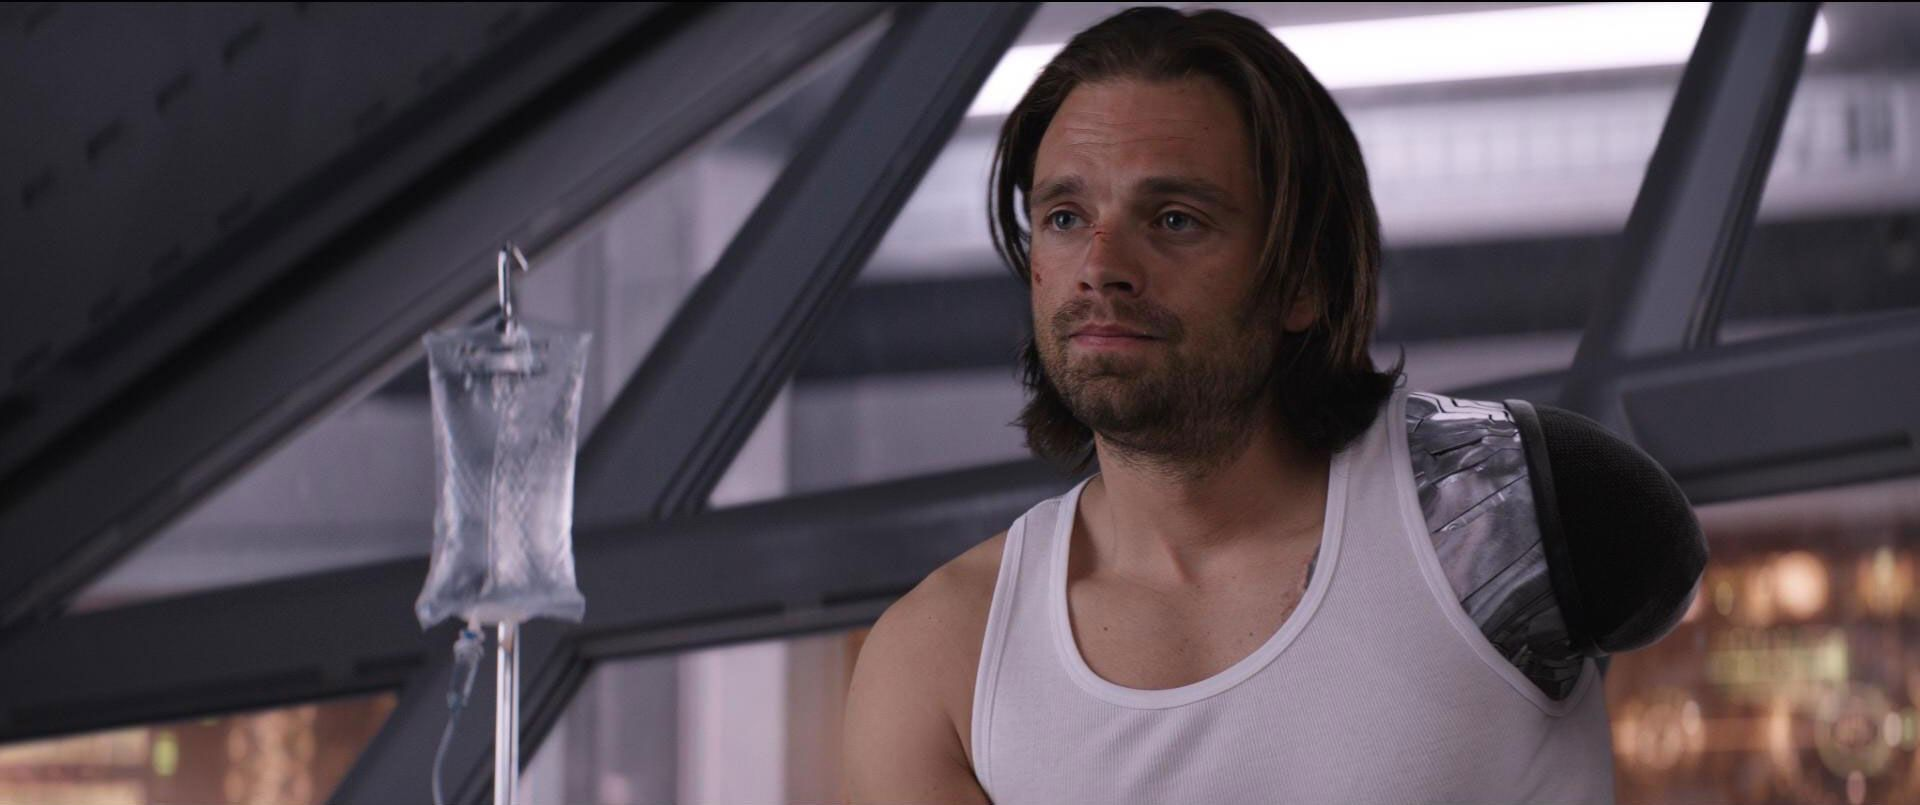 Disney+ unveils first look at Bucky's new costume in Marvel's Falcon and Winter Soldier